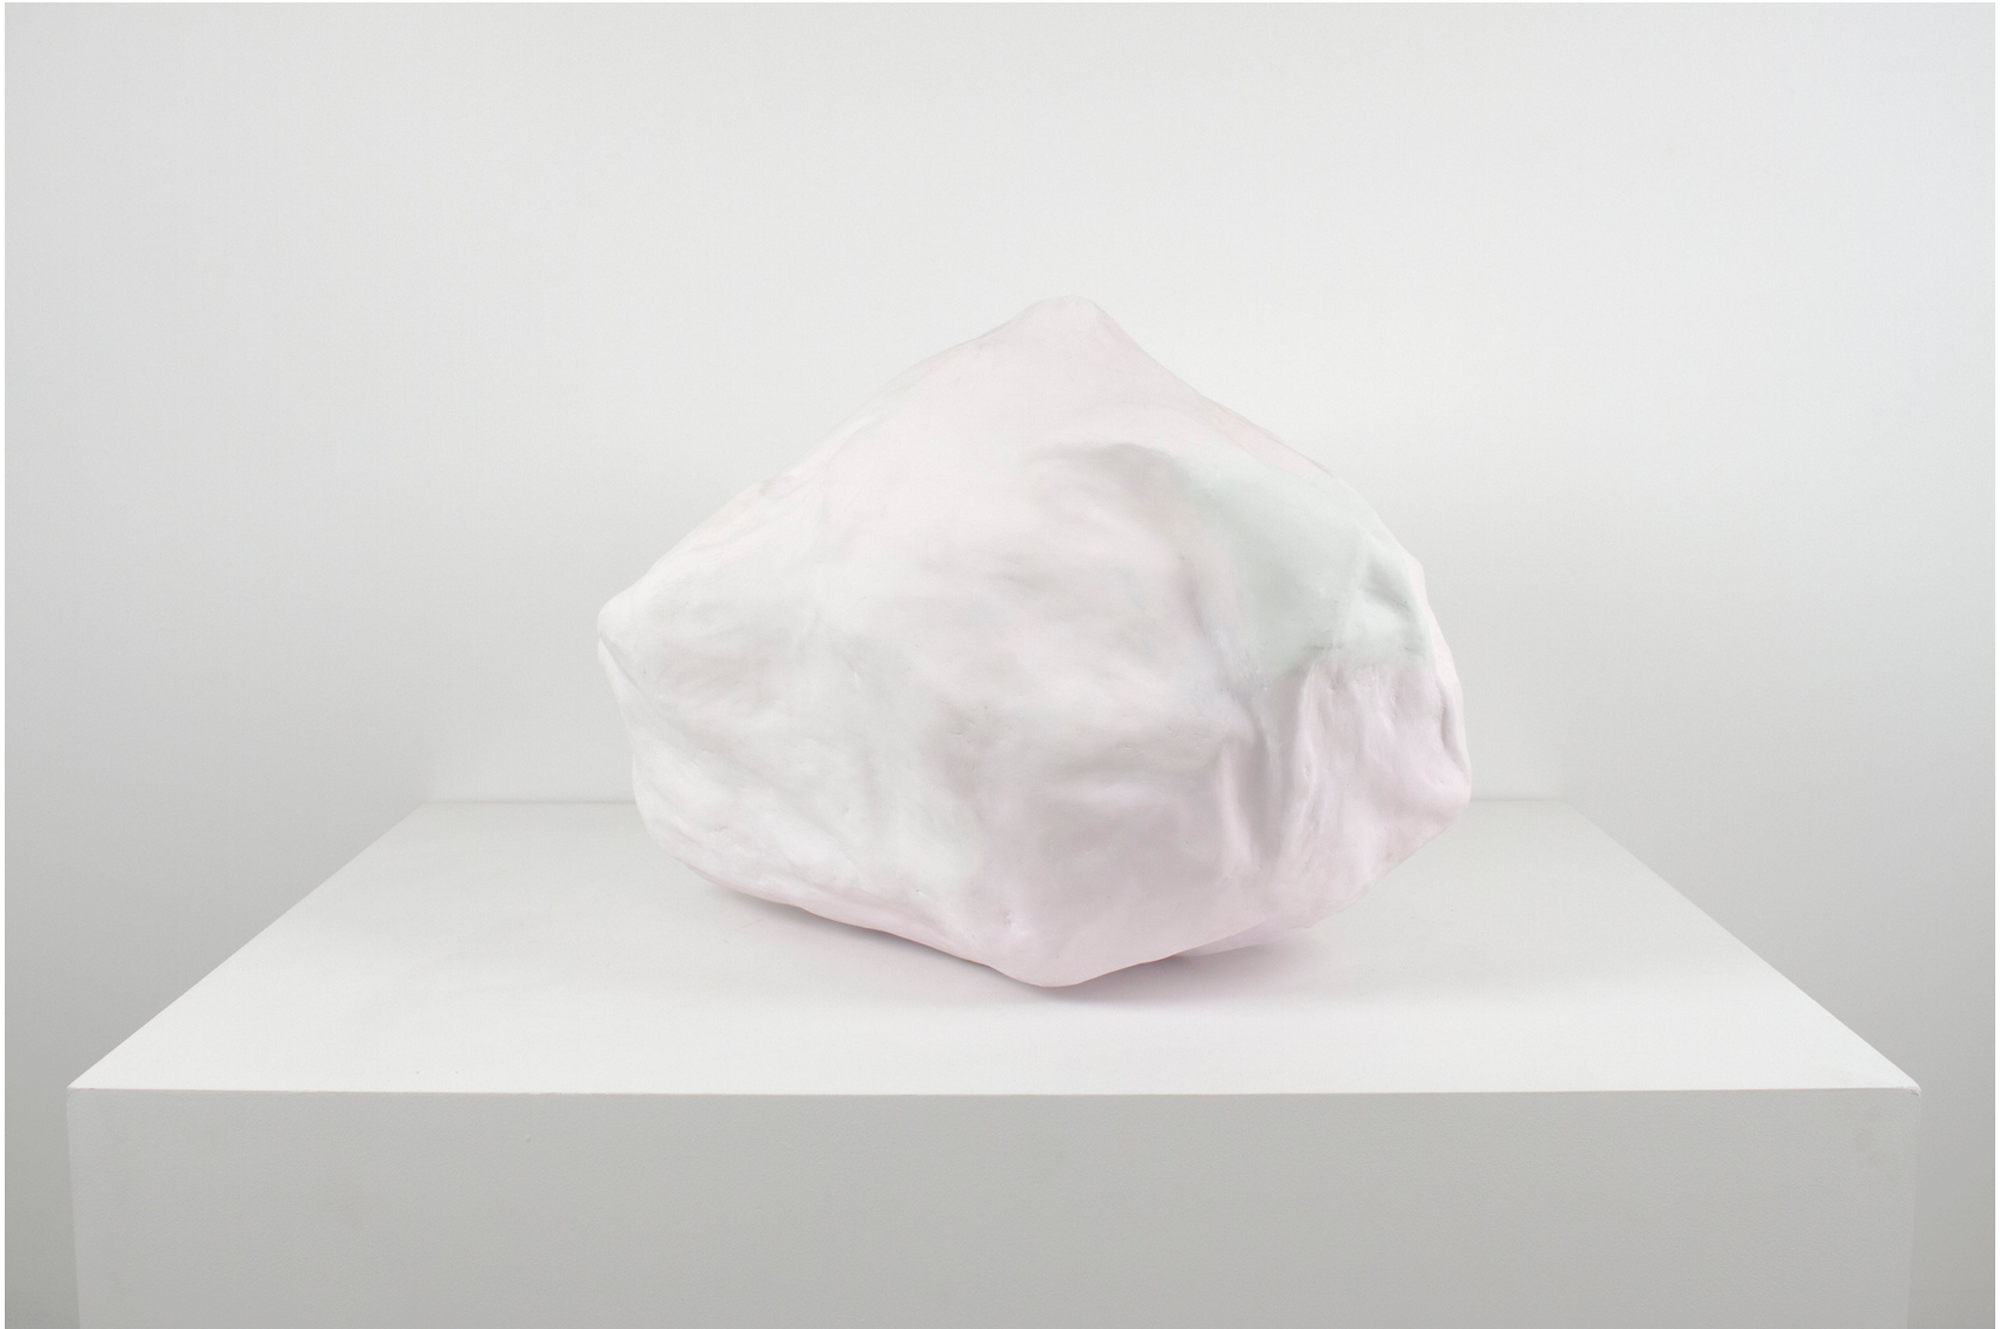 A white background and a white pedestal with a pink and white abstract sculpture